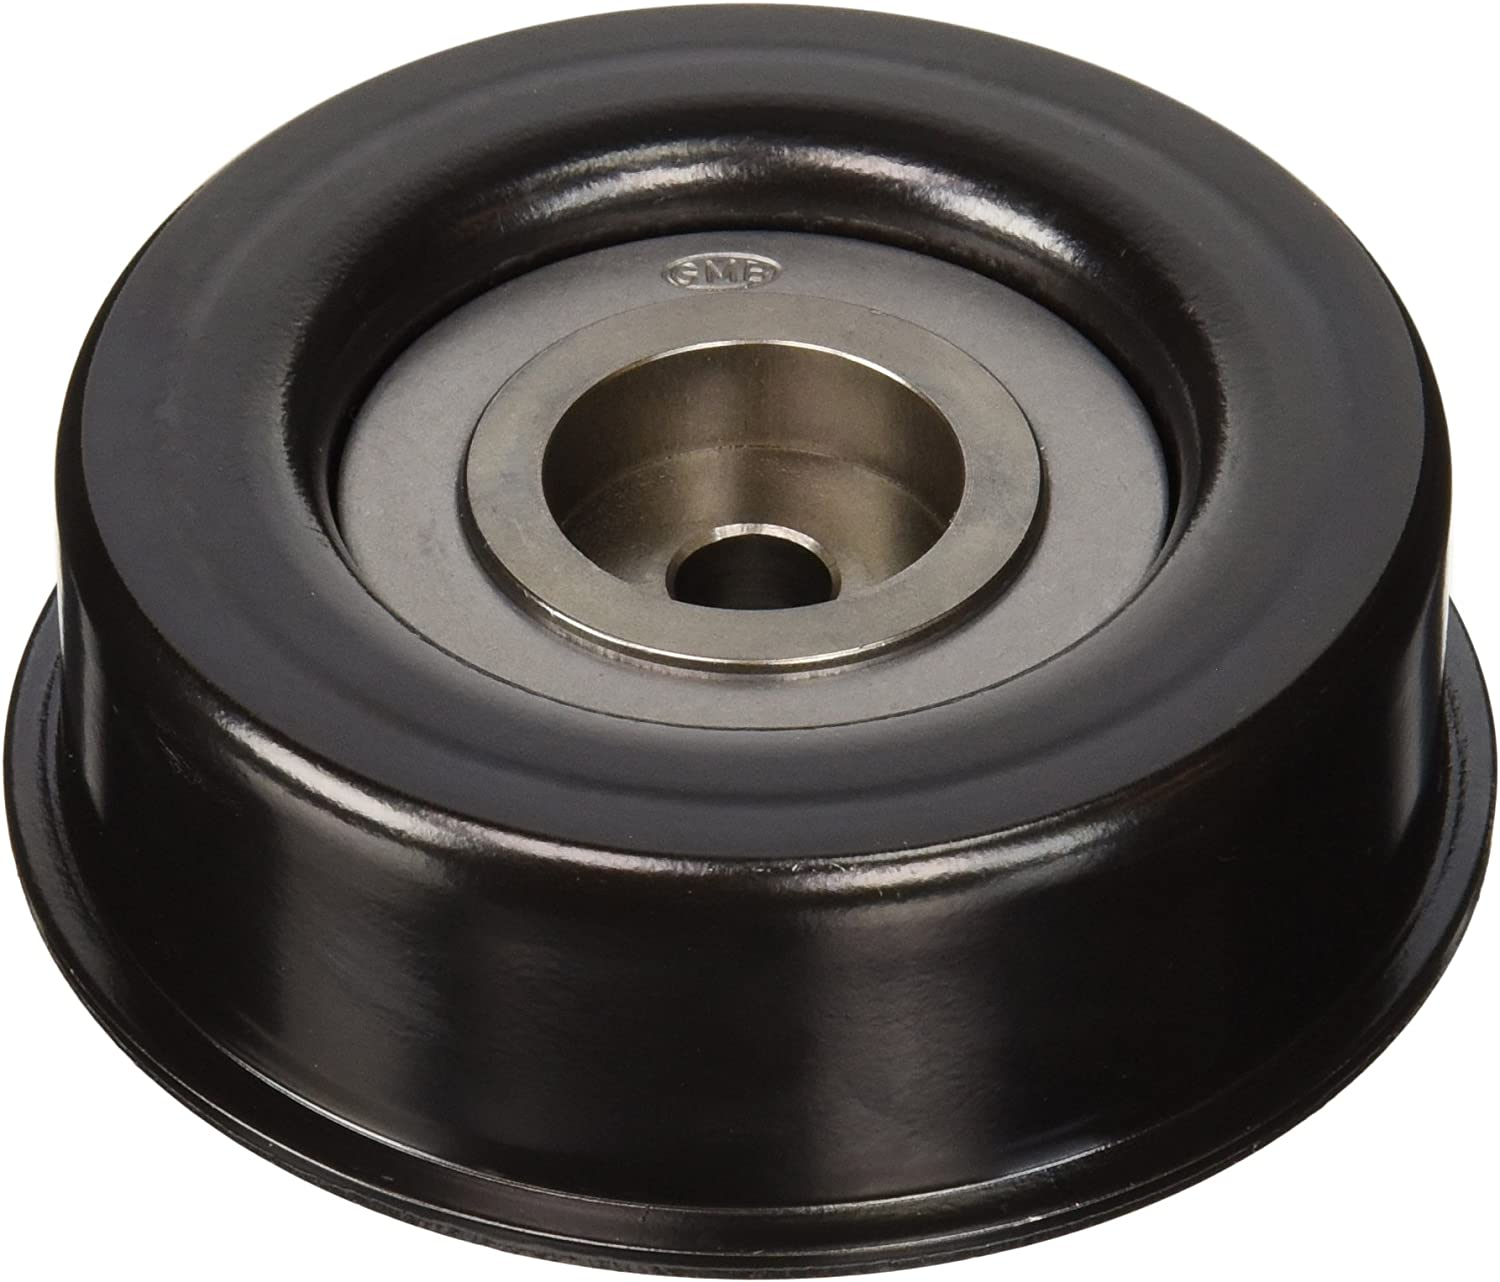 Dayco 89158 Idler Pulley